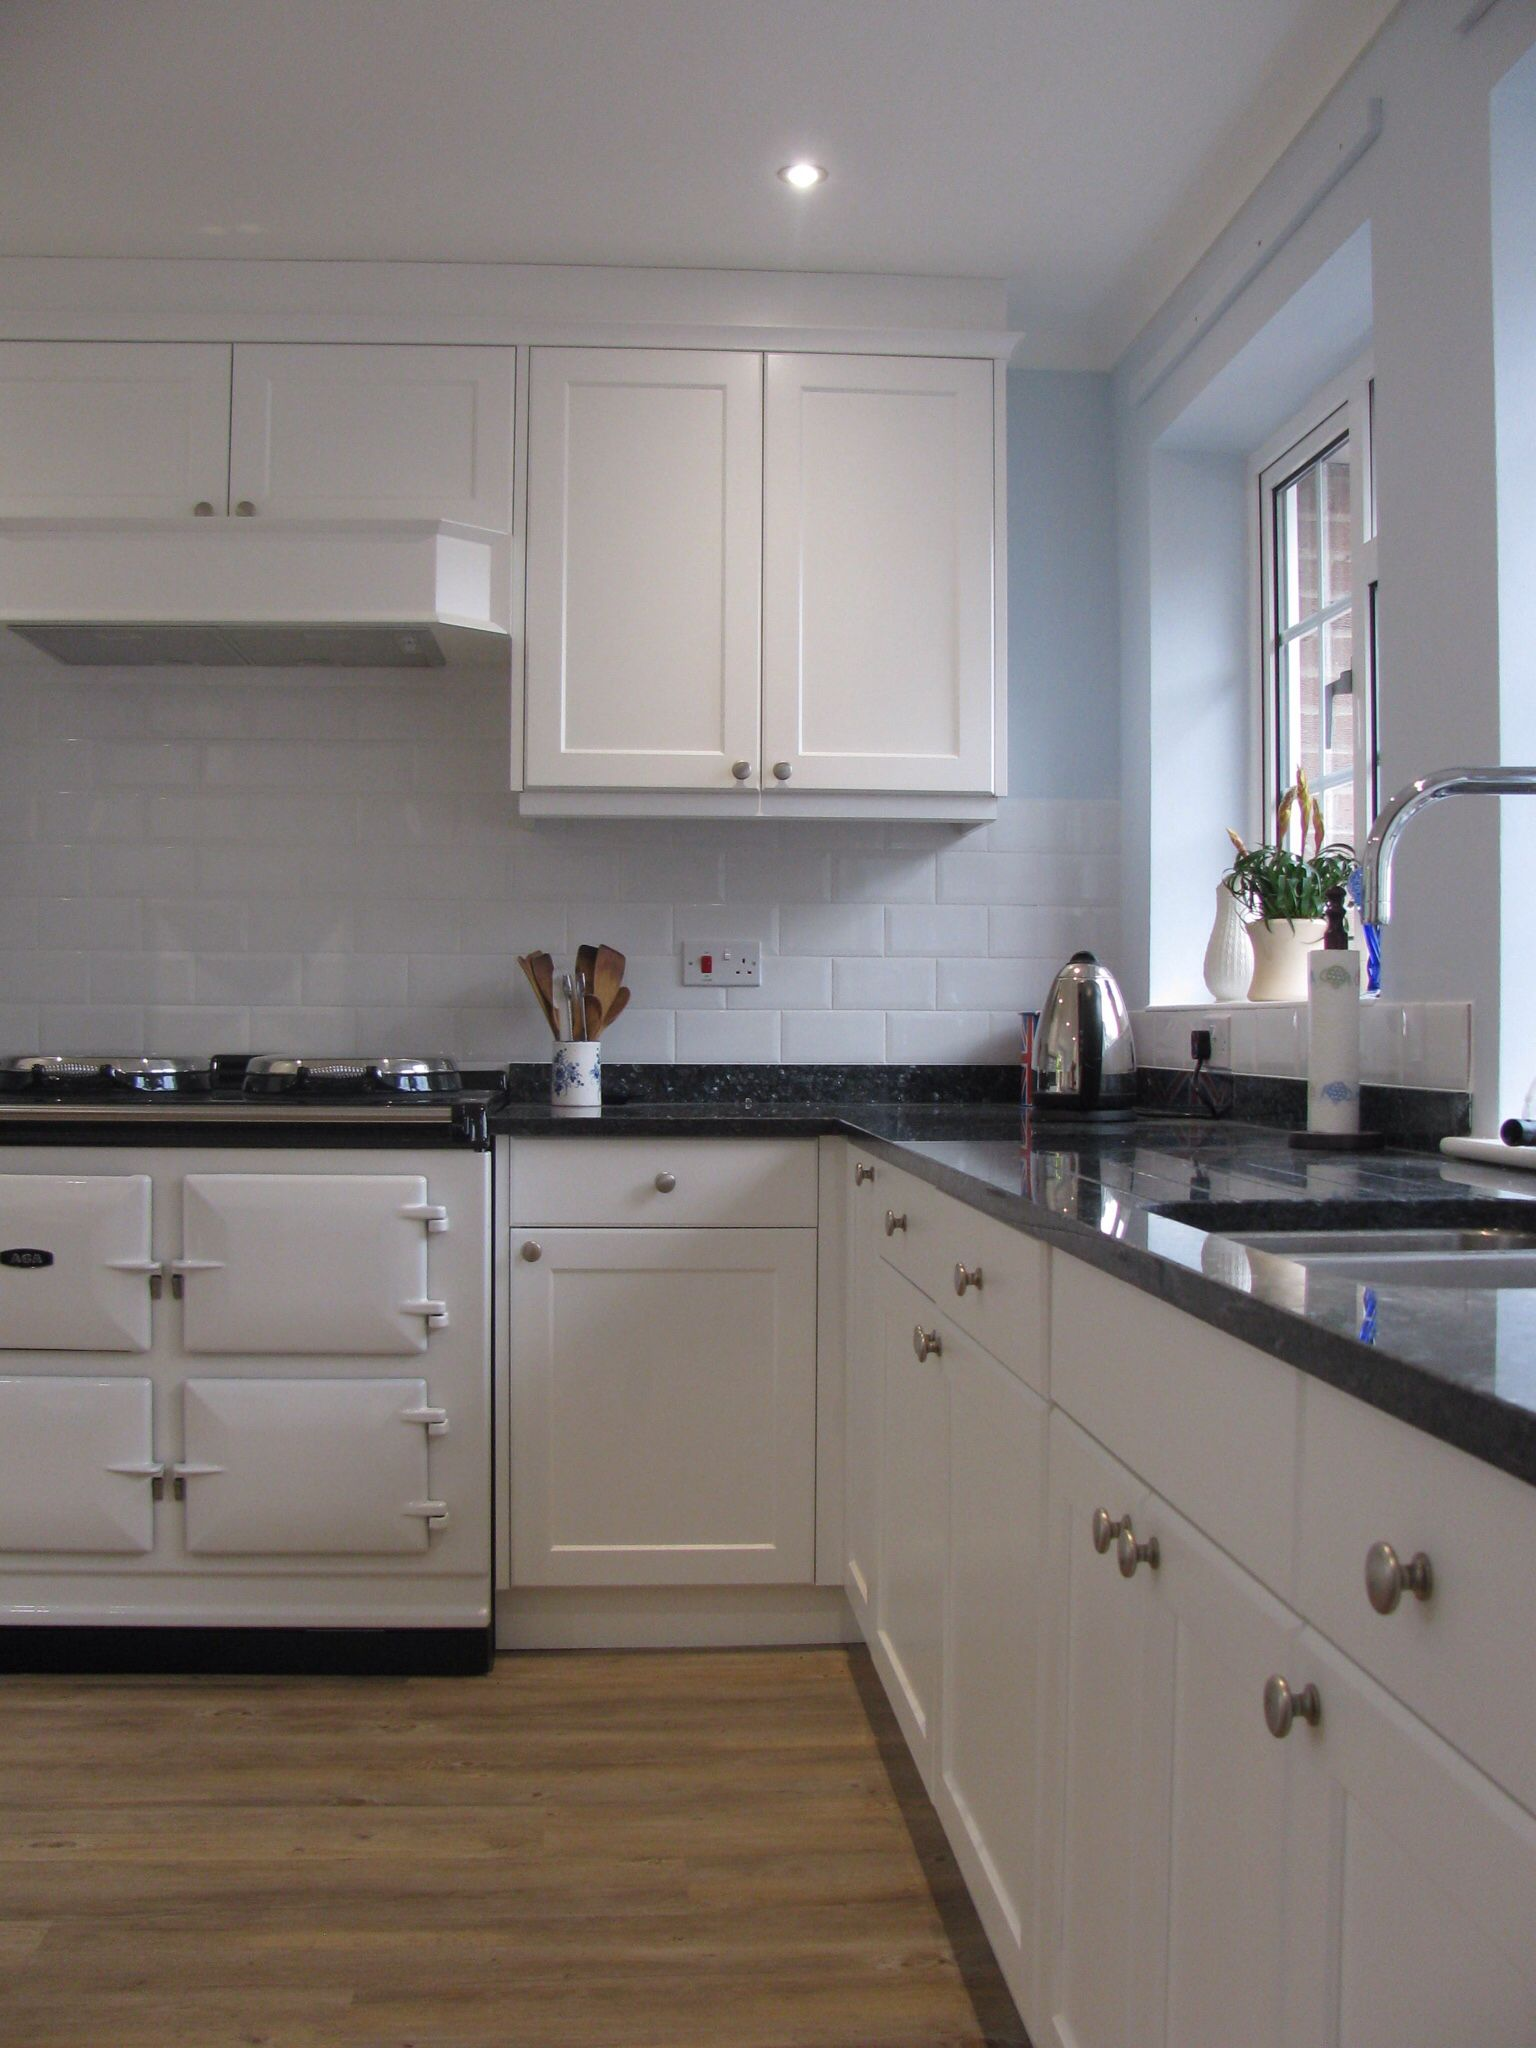 Bespoke Kitchen Finished In Satin White With Blue Pearl Granite And White Aga Home Decor Ideas